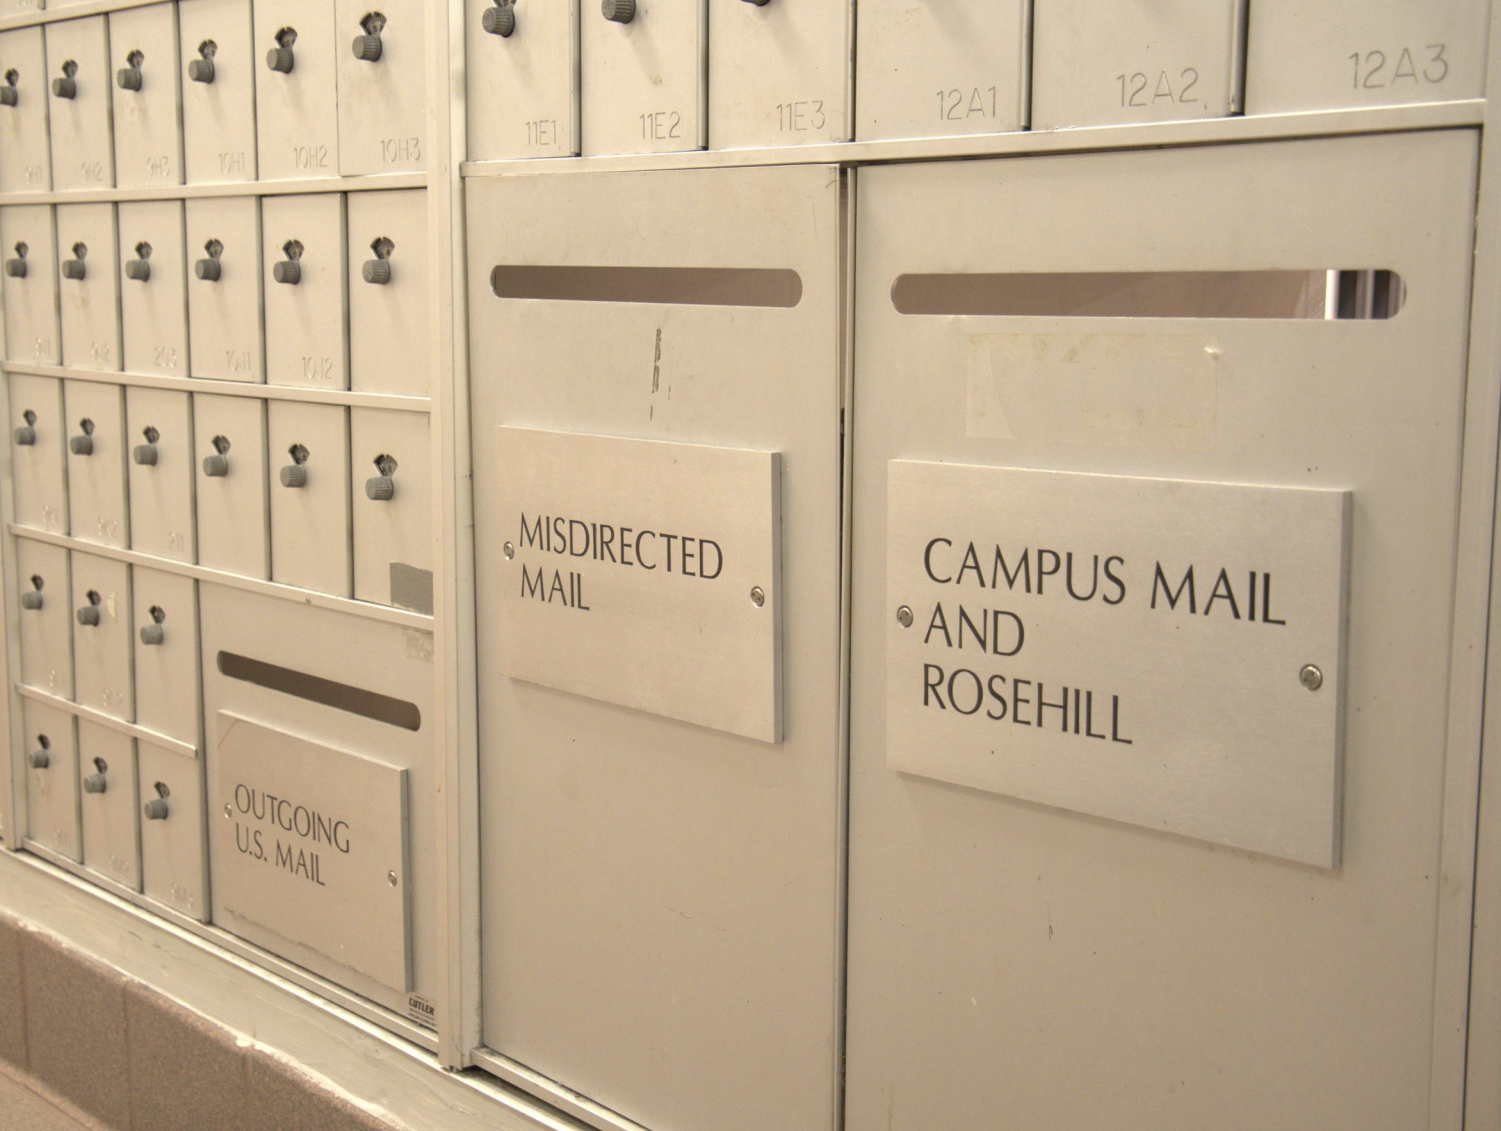 Students have expressed concerns about Public Safety's response to reports of missing cash.